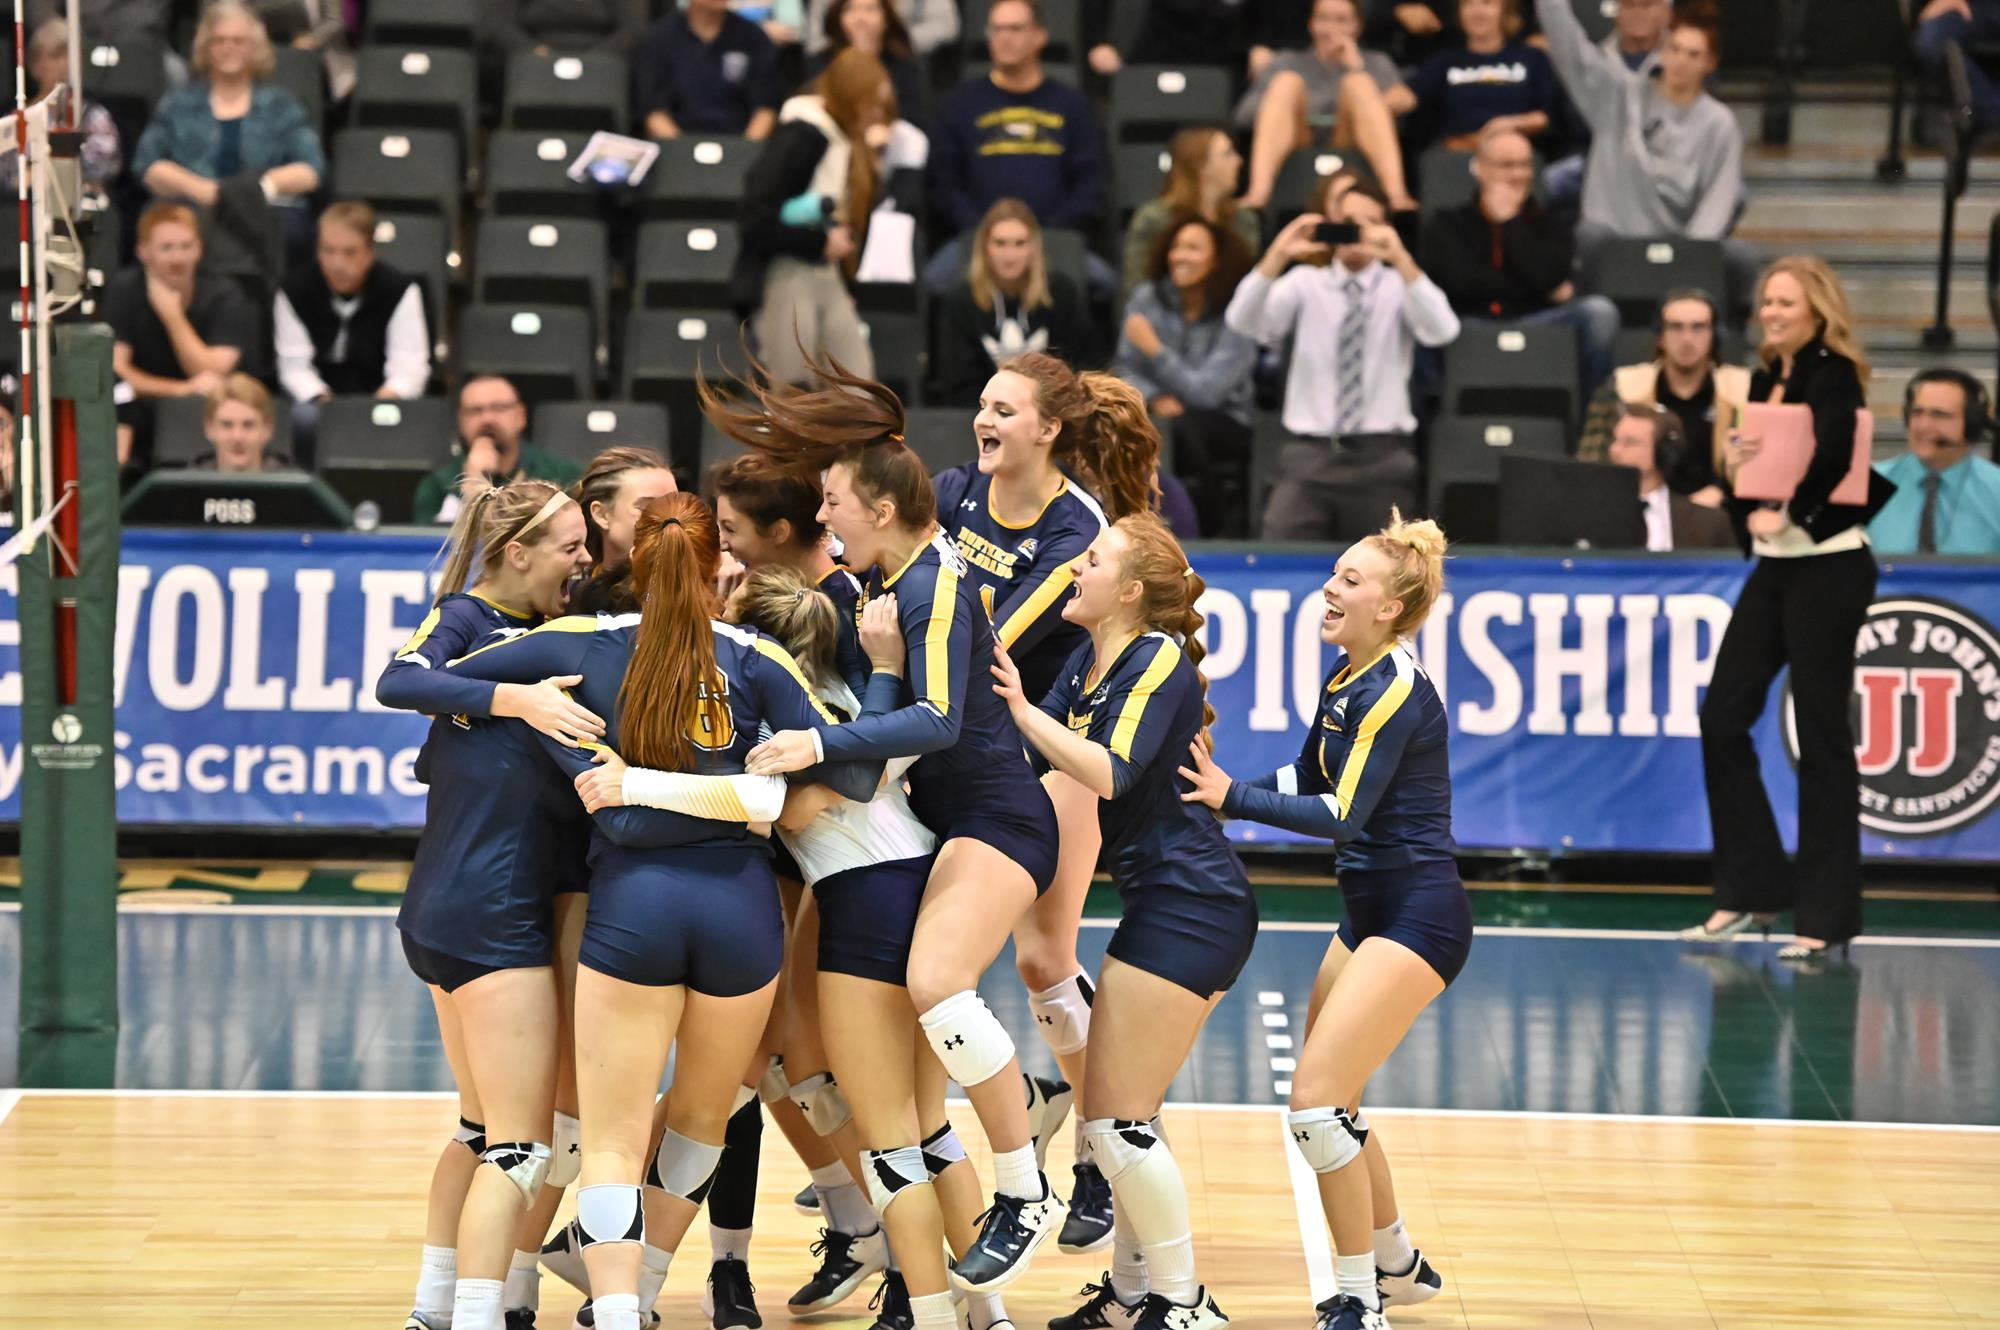 Volleyball Returns To The Court For Spring Schedule University Of Northern Colorado Athletics